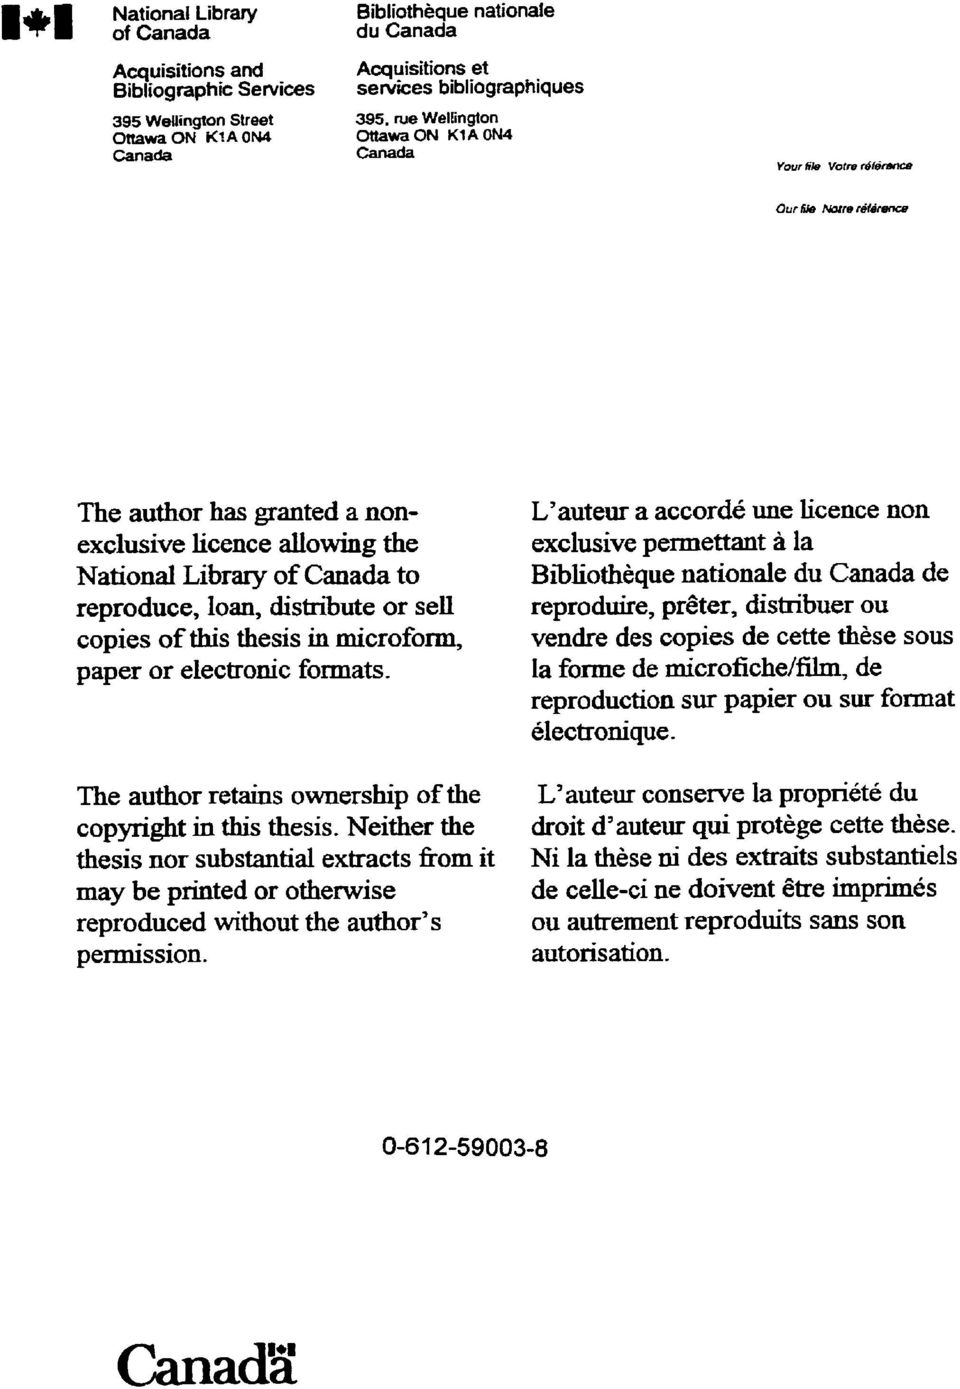 Canada to reproduce, loan, distribute or seil copies of this thesis in microform, paper or electronic formats. The author retains ownership of the copyright in this thesis.